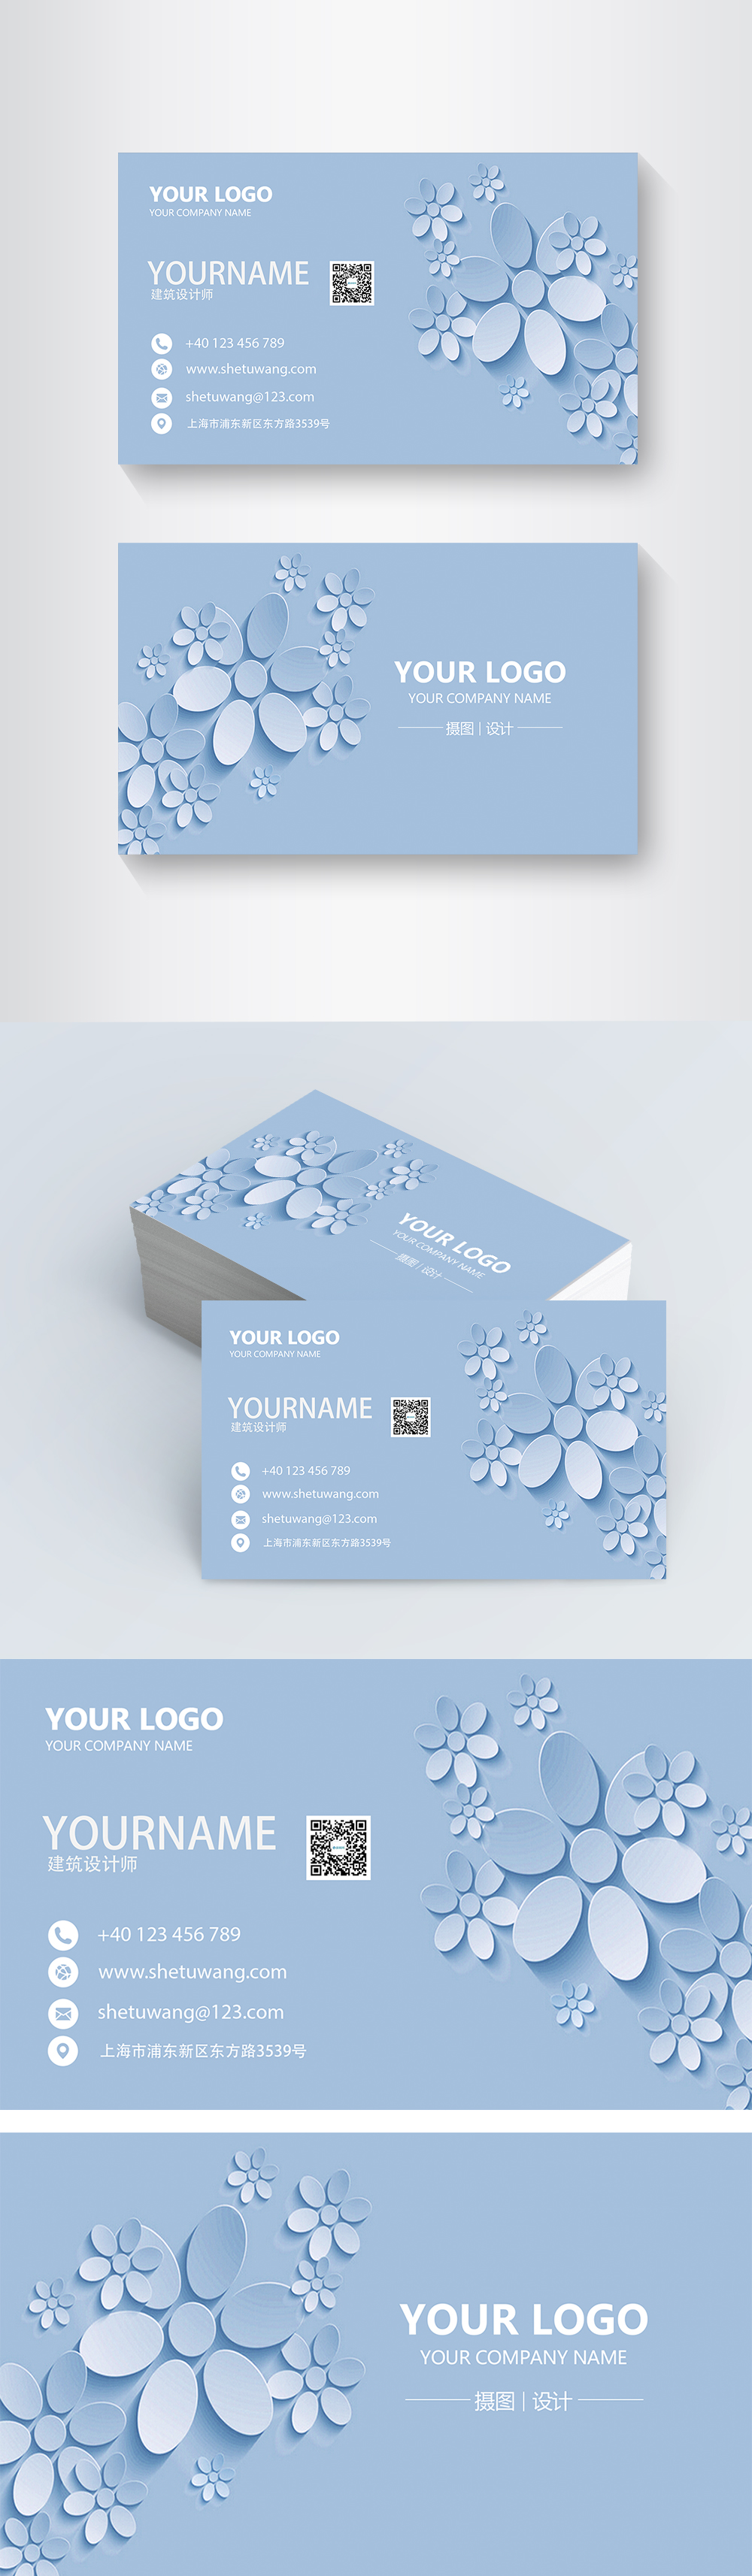 Blue Flower Texture Simple Style Card Design Template Template Image Picture Free Download 400146207 Lovepik Com,Royal Blue Wedding Cupcake Designs